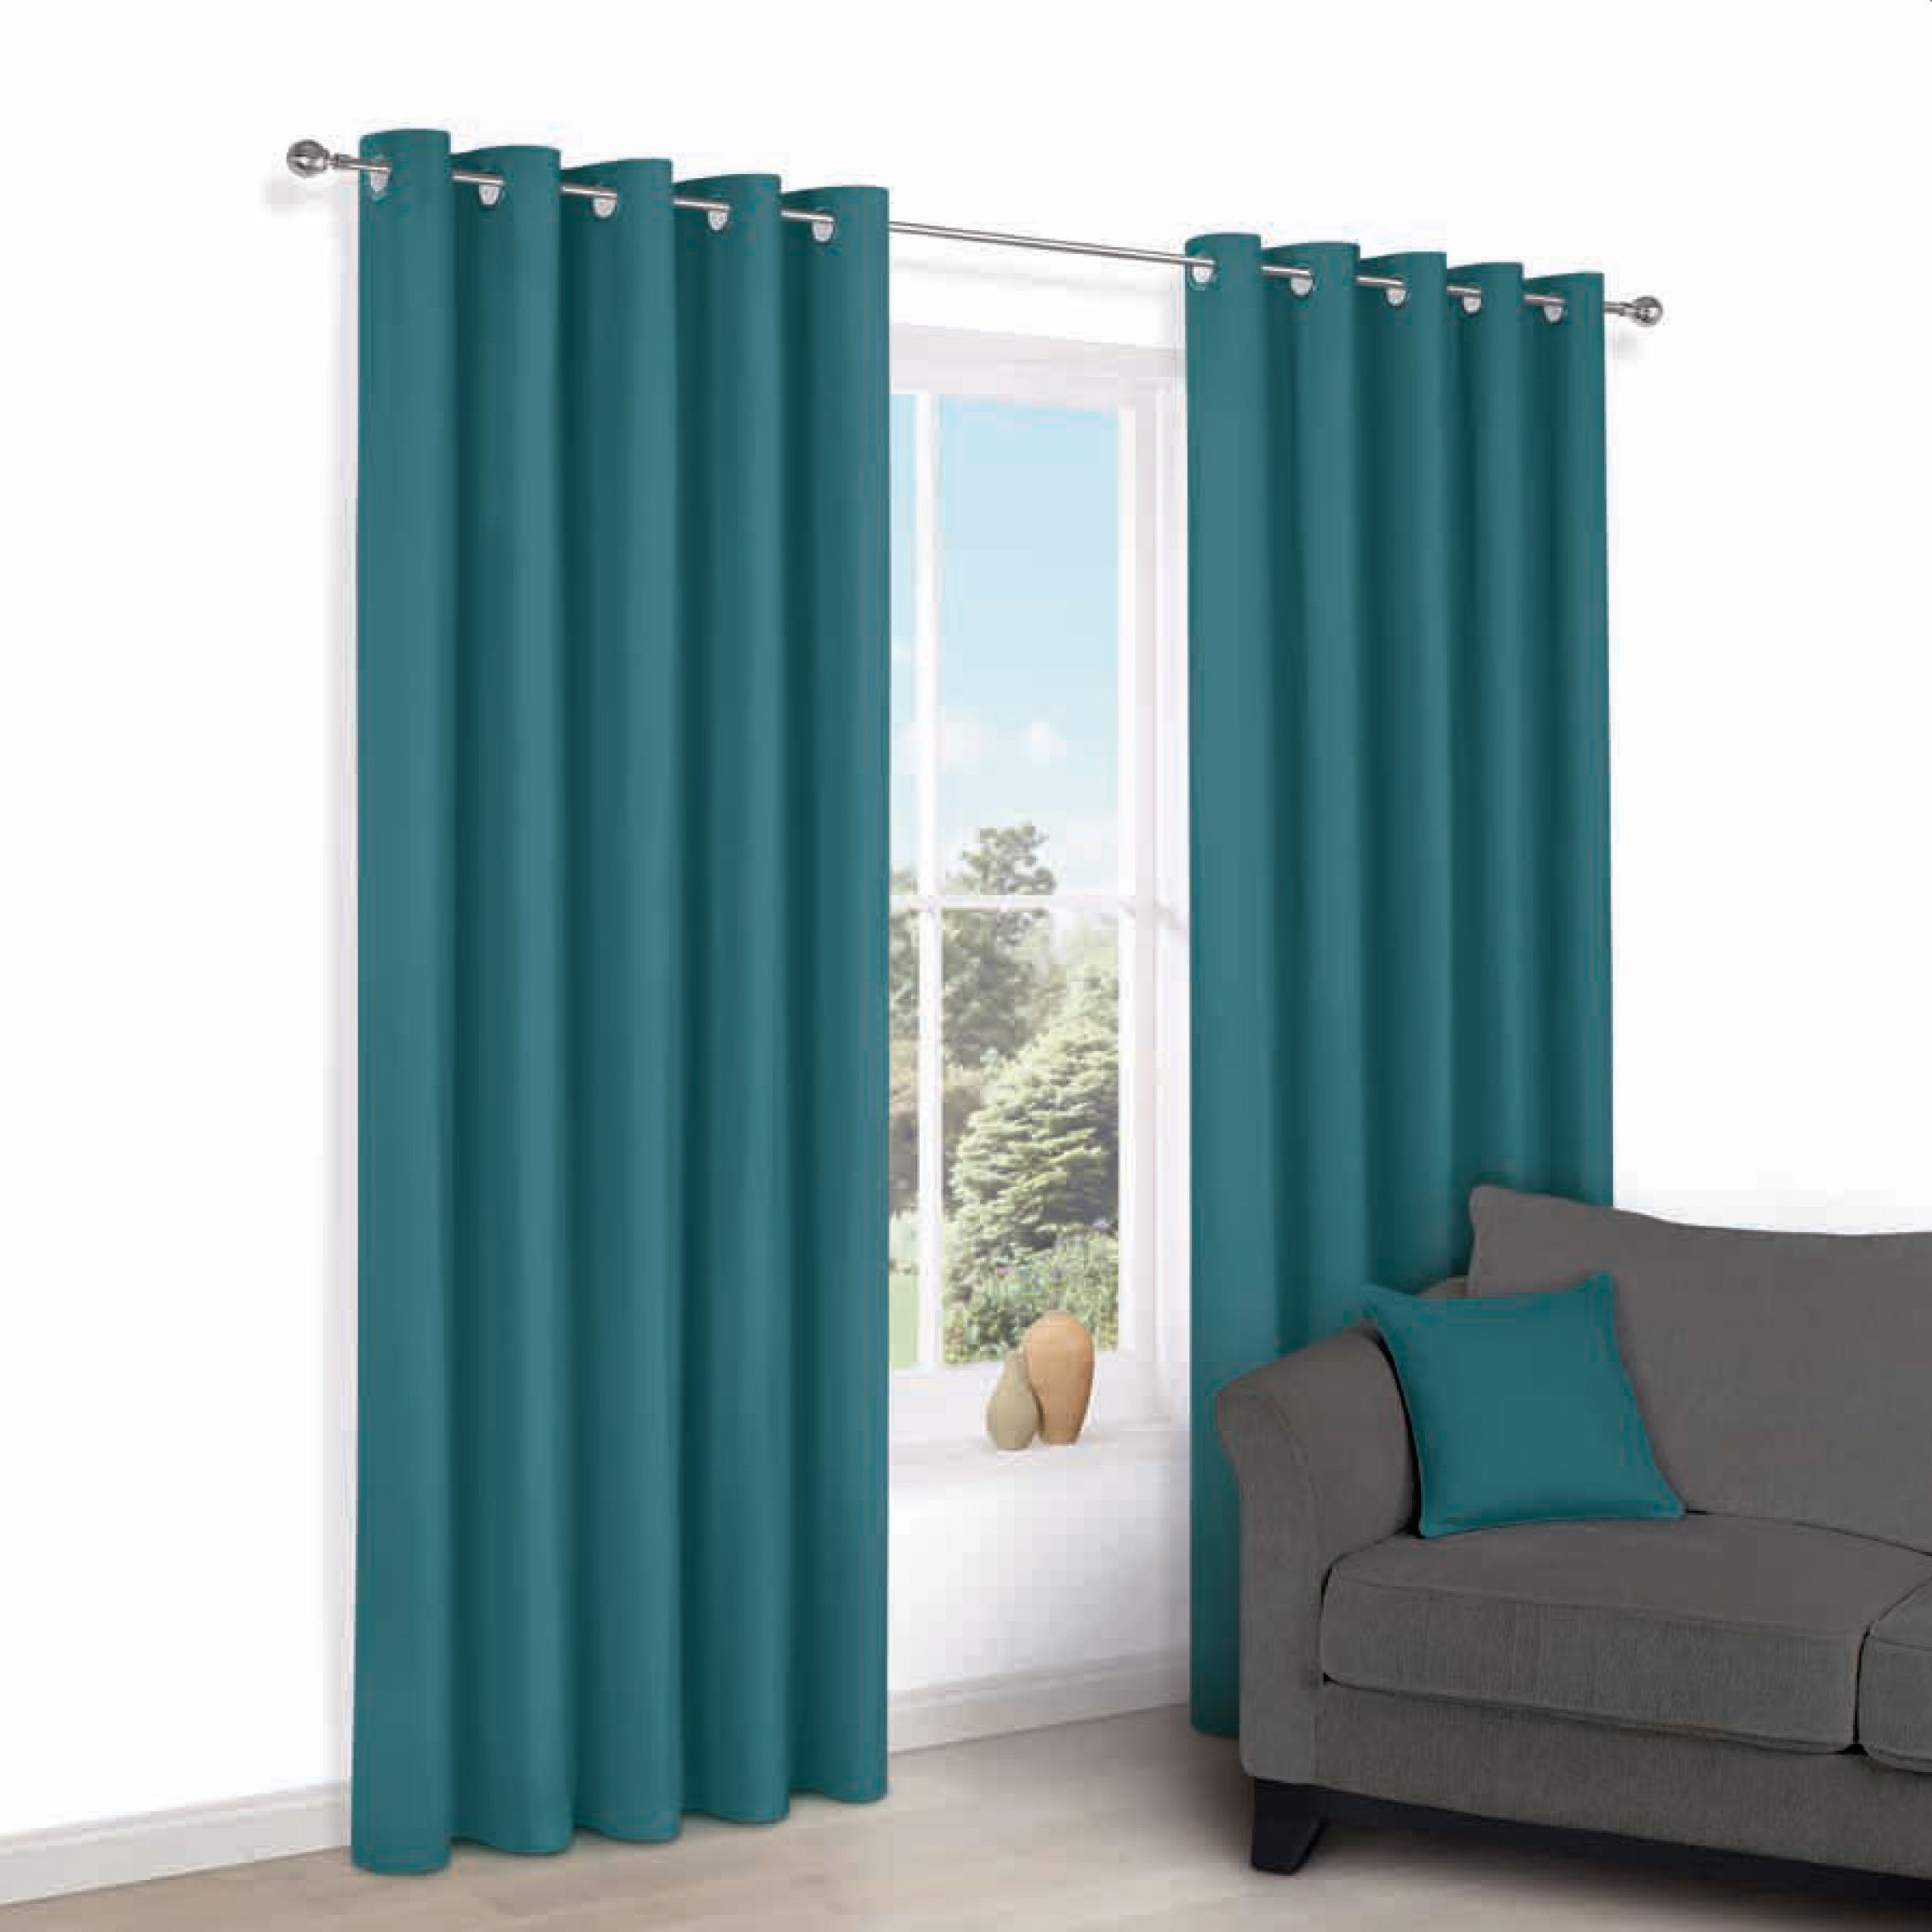 Zen Peacock Plain Eyelet Curtains (w)228cm (l)228cm